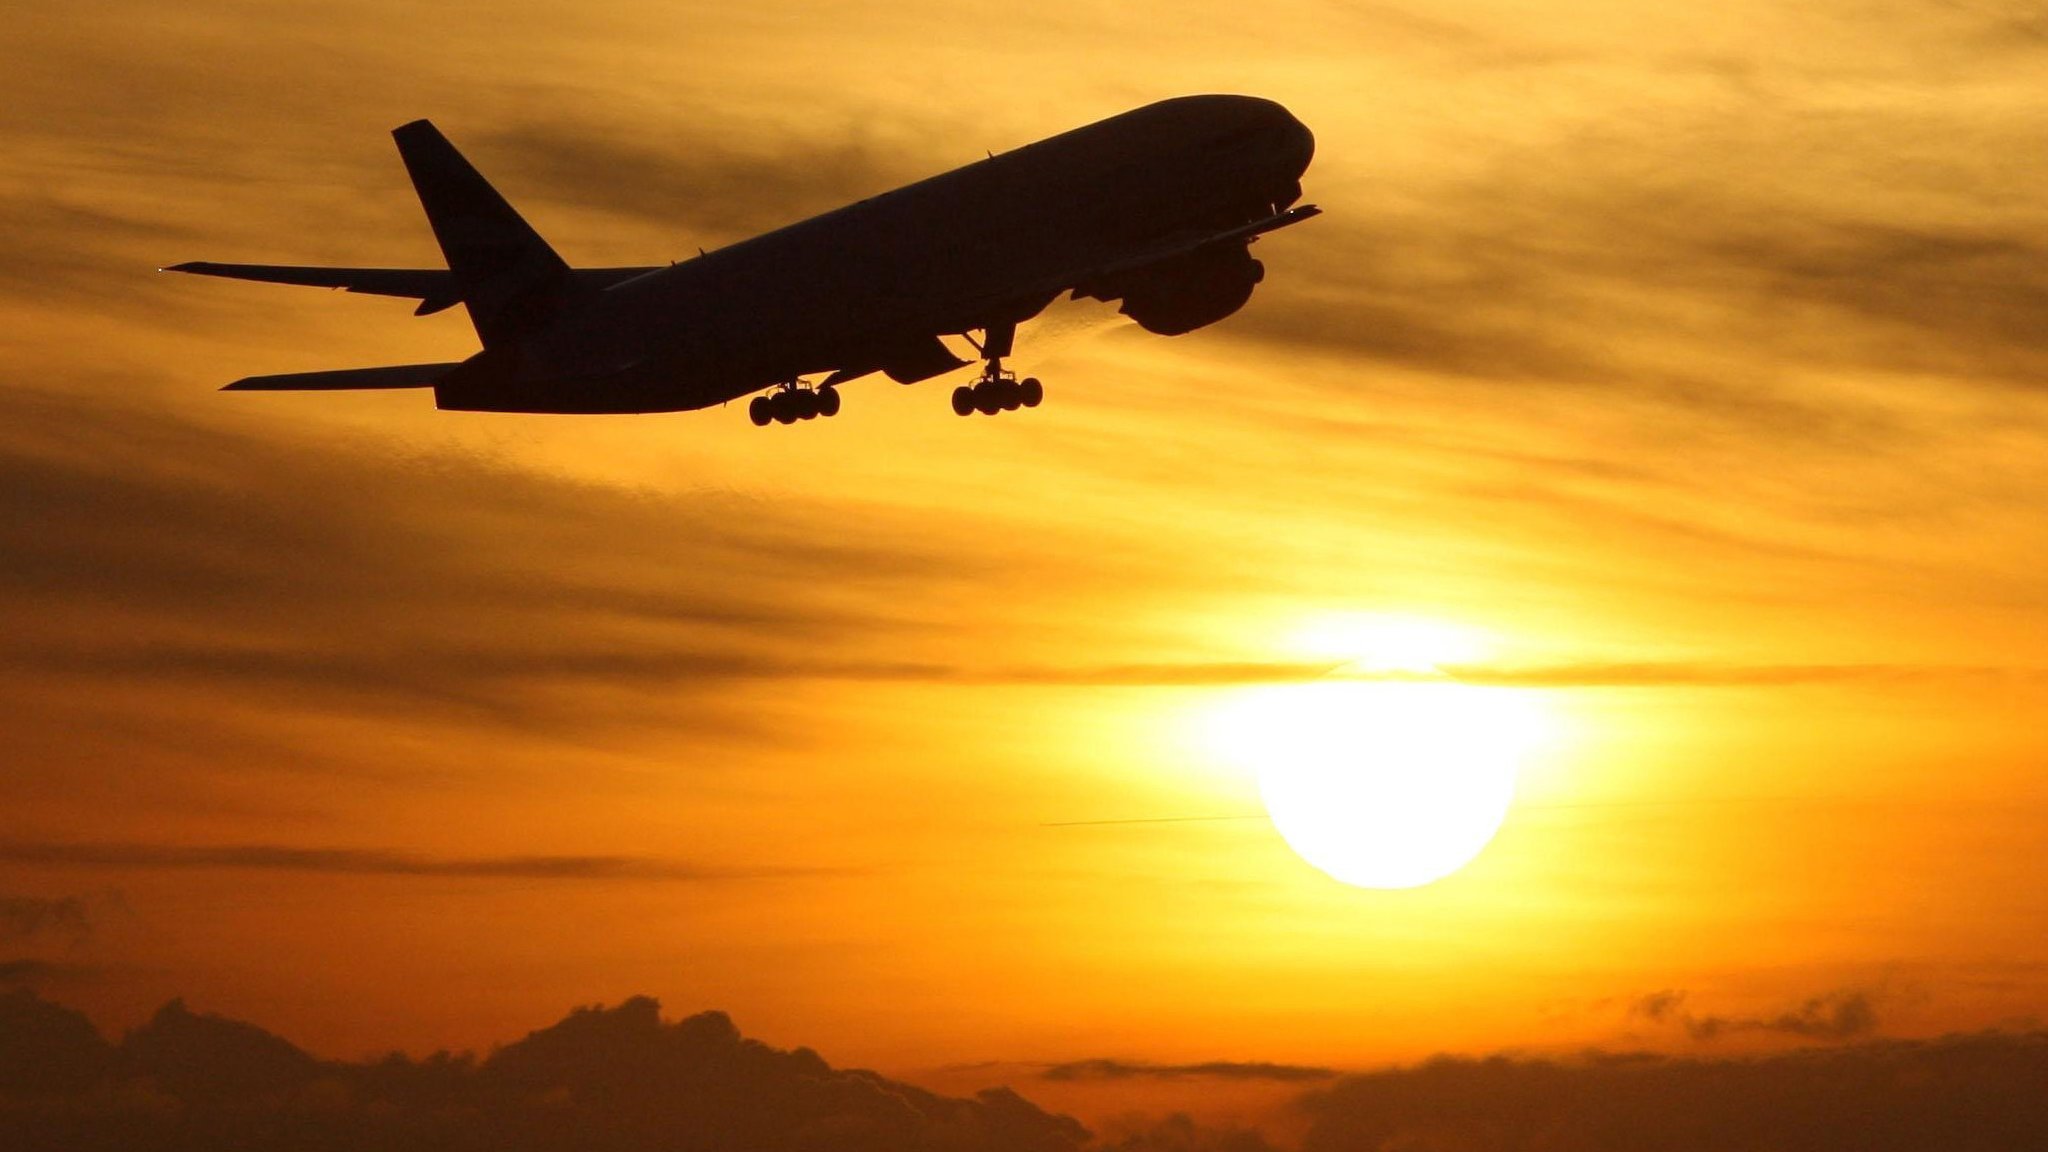 UK airports with worst departing flight delays revealed